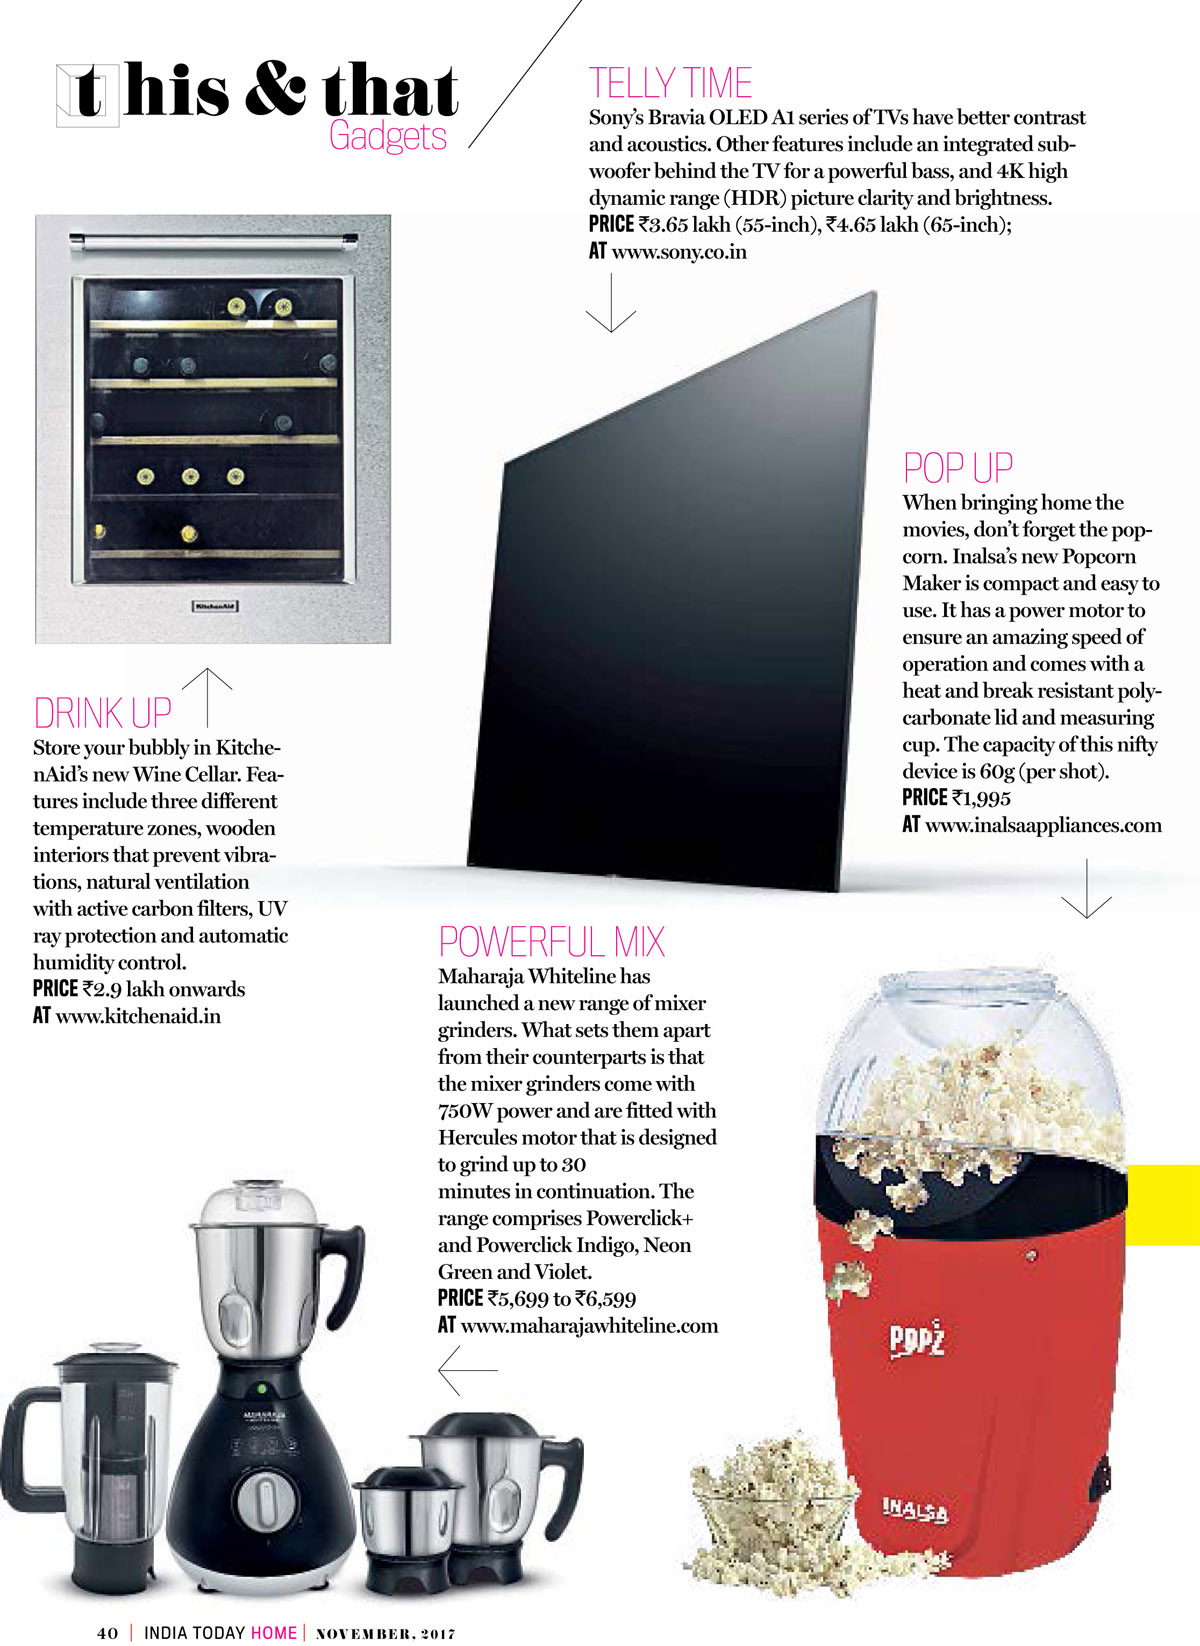 Popcorn Maker - India Today Home Coverage